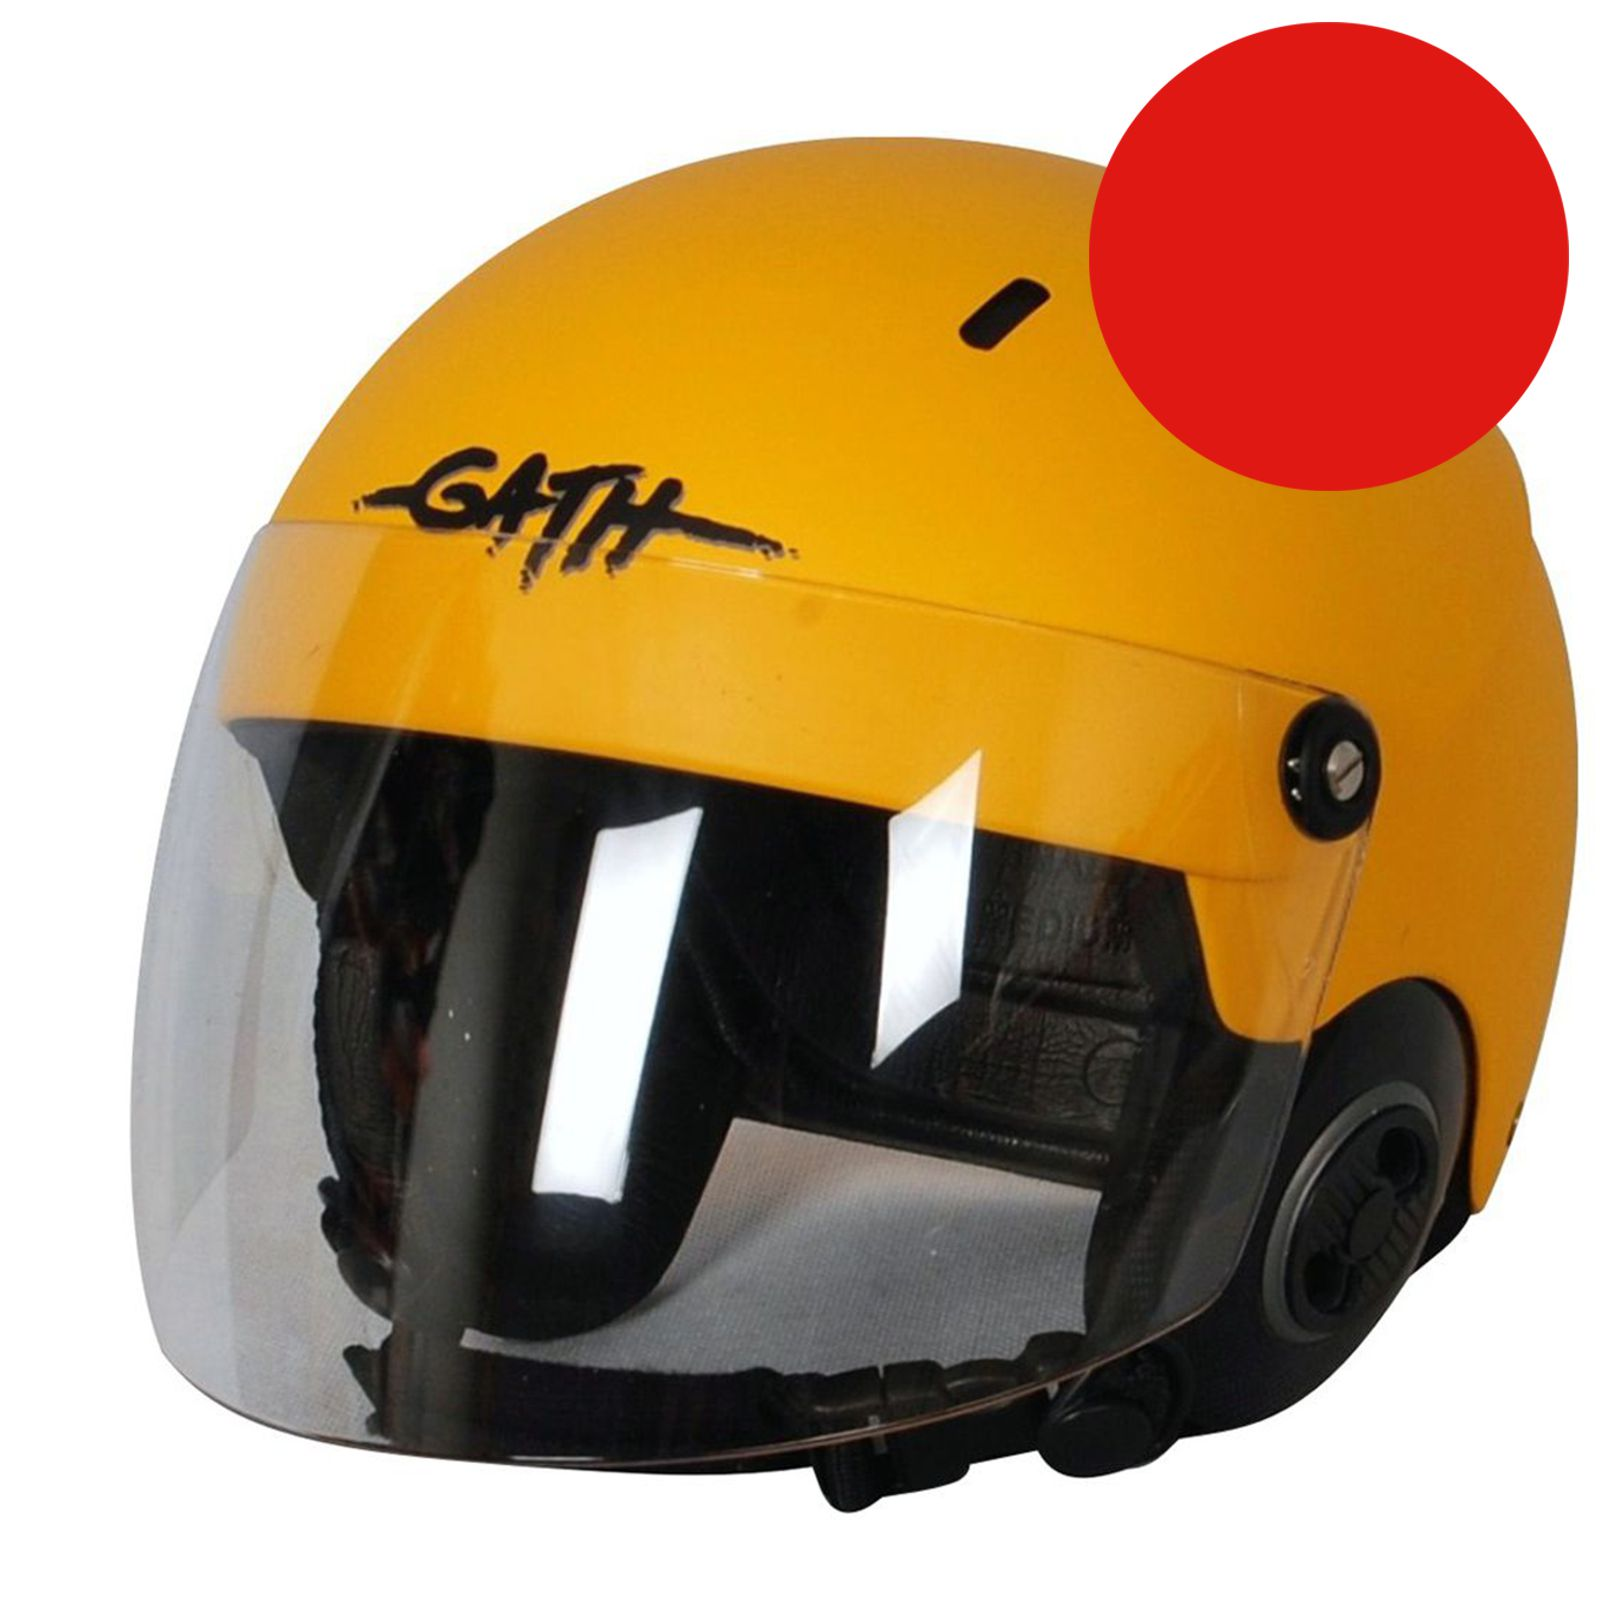 GATH Helm RESCUE Safety Rot matt Gr XL mit klarem Vollvisier